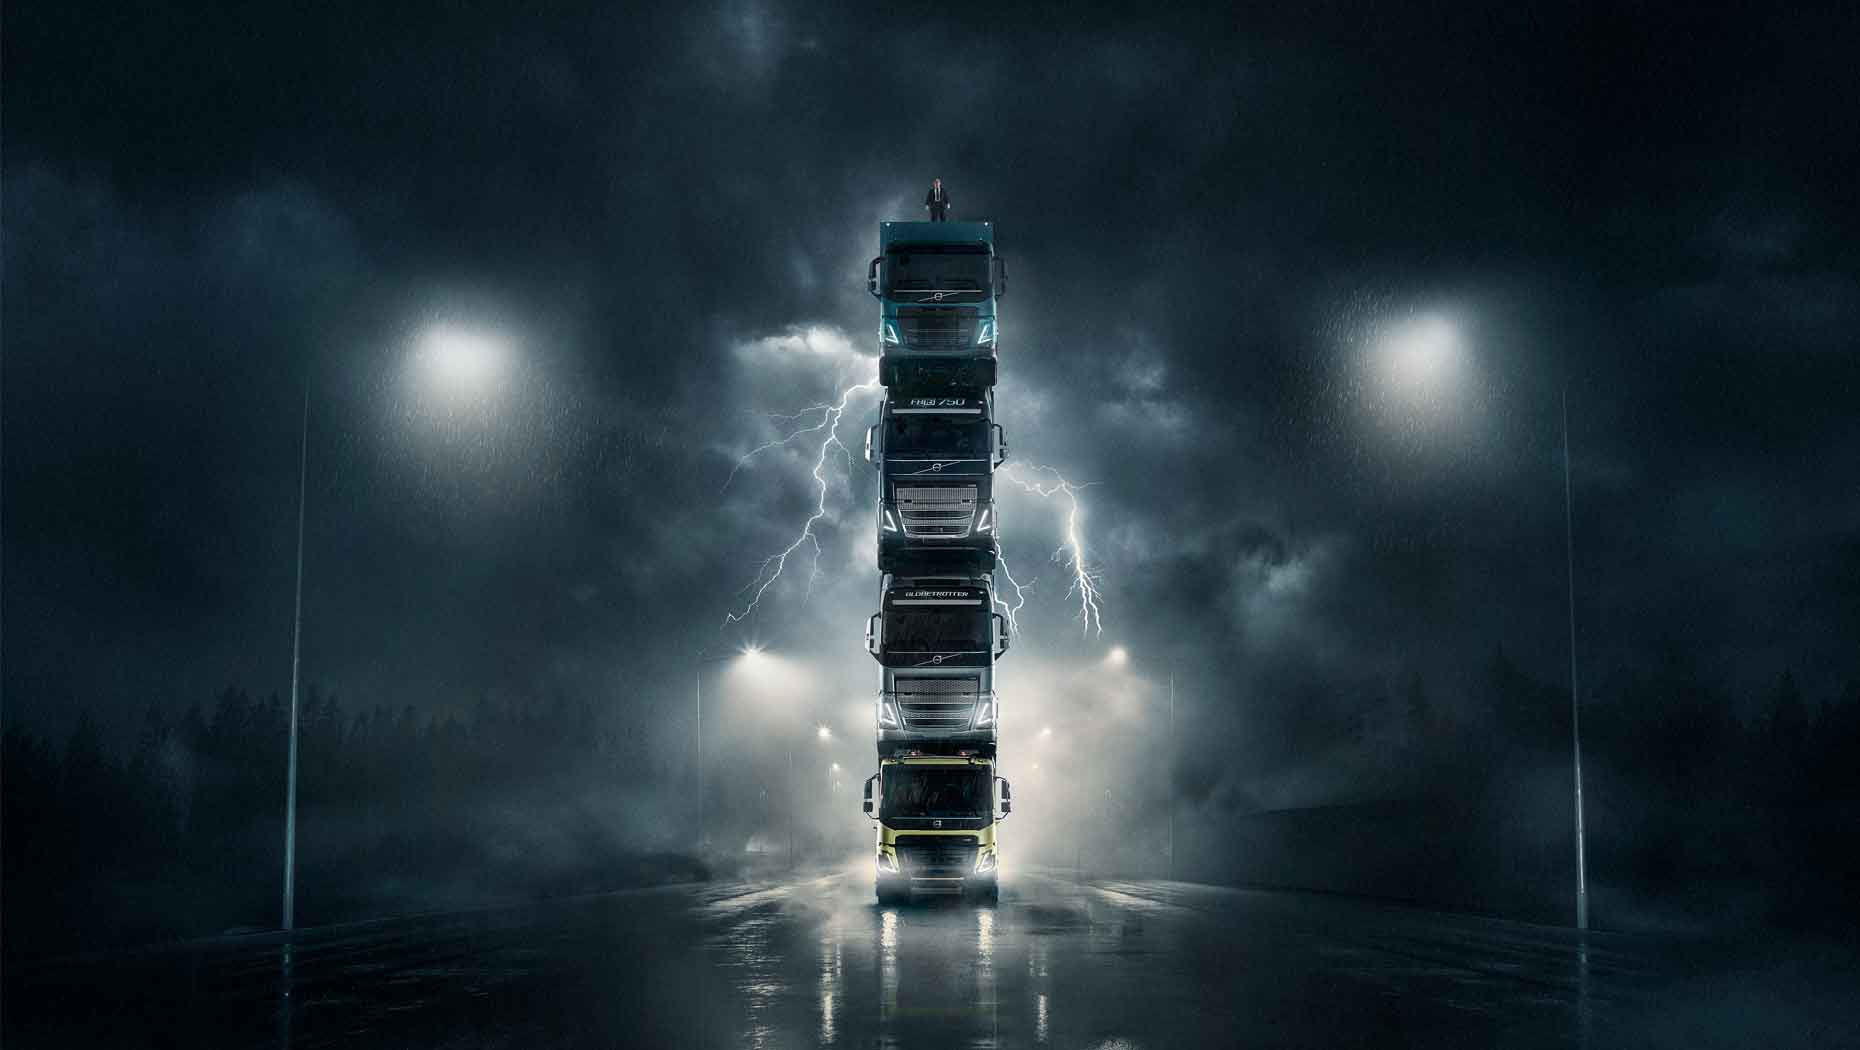 The new Volvo FMX, FH, FH16 and FM trucks stacked on top of each other in a spectacular tower.